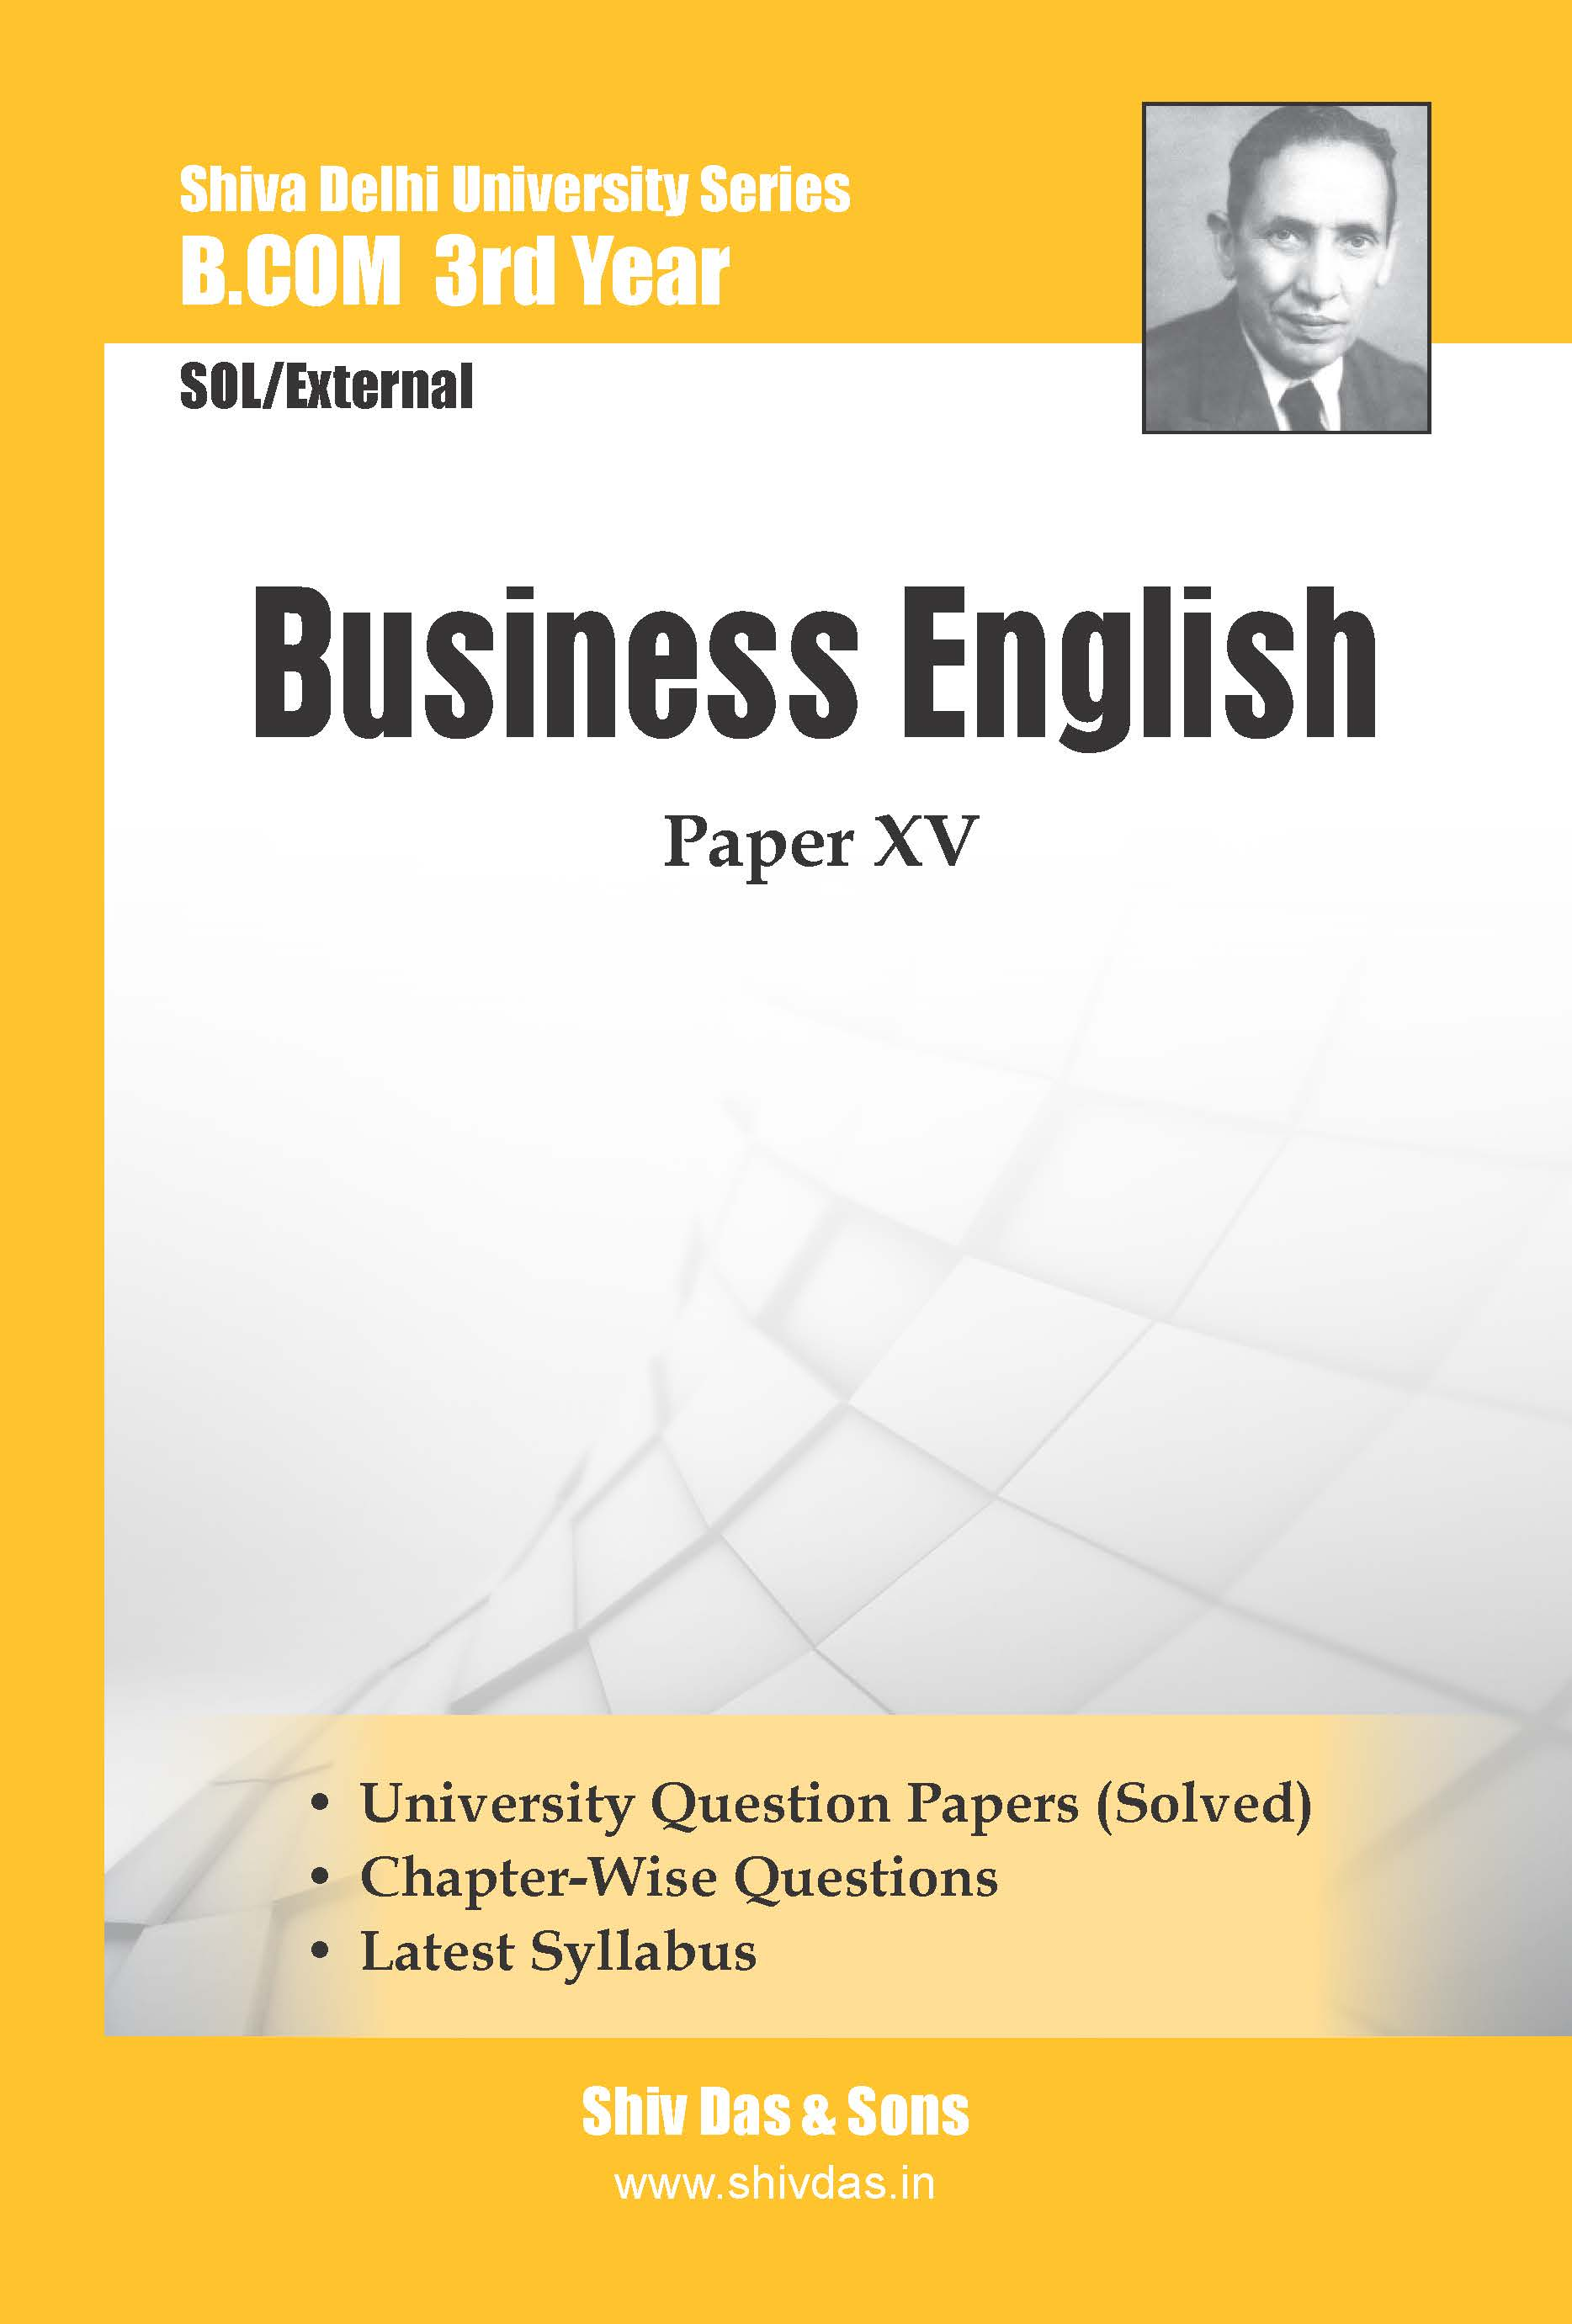 B.Com 3rd Year SOL/External Business English Shiv Das Delhi University Series